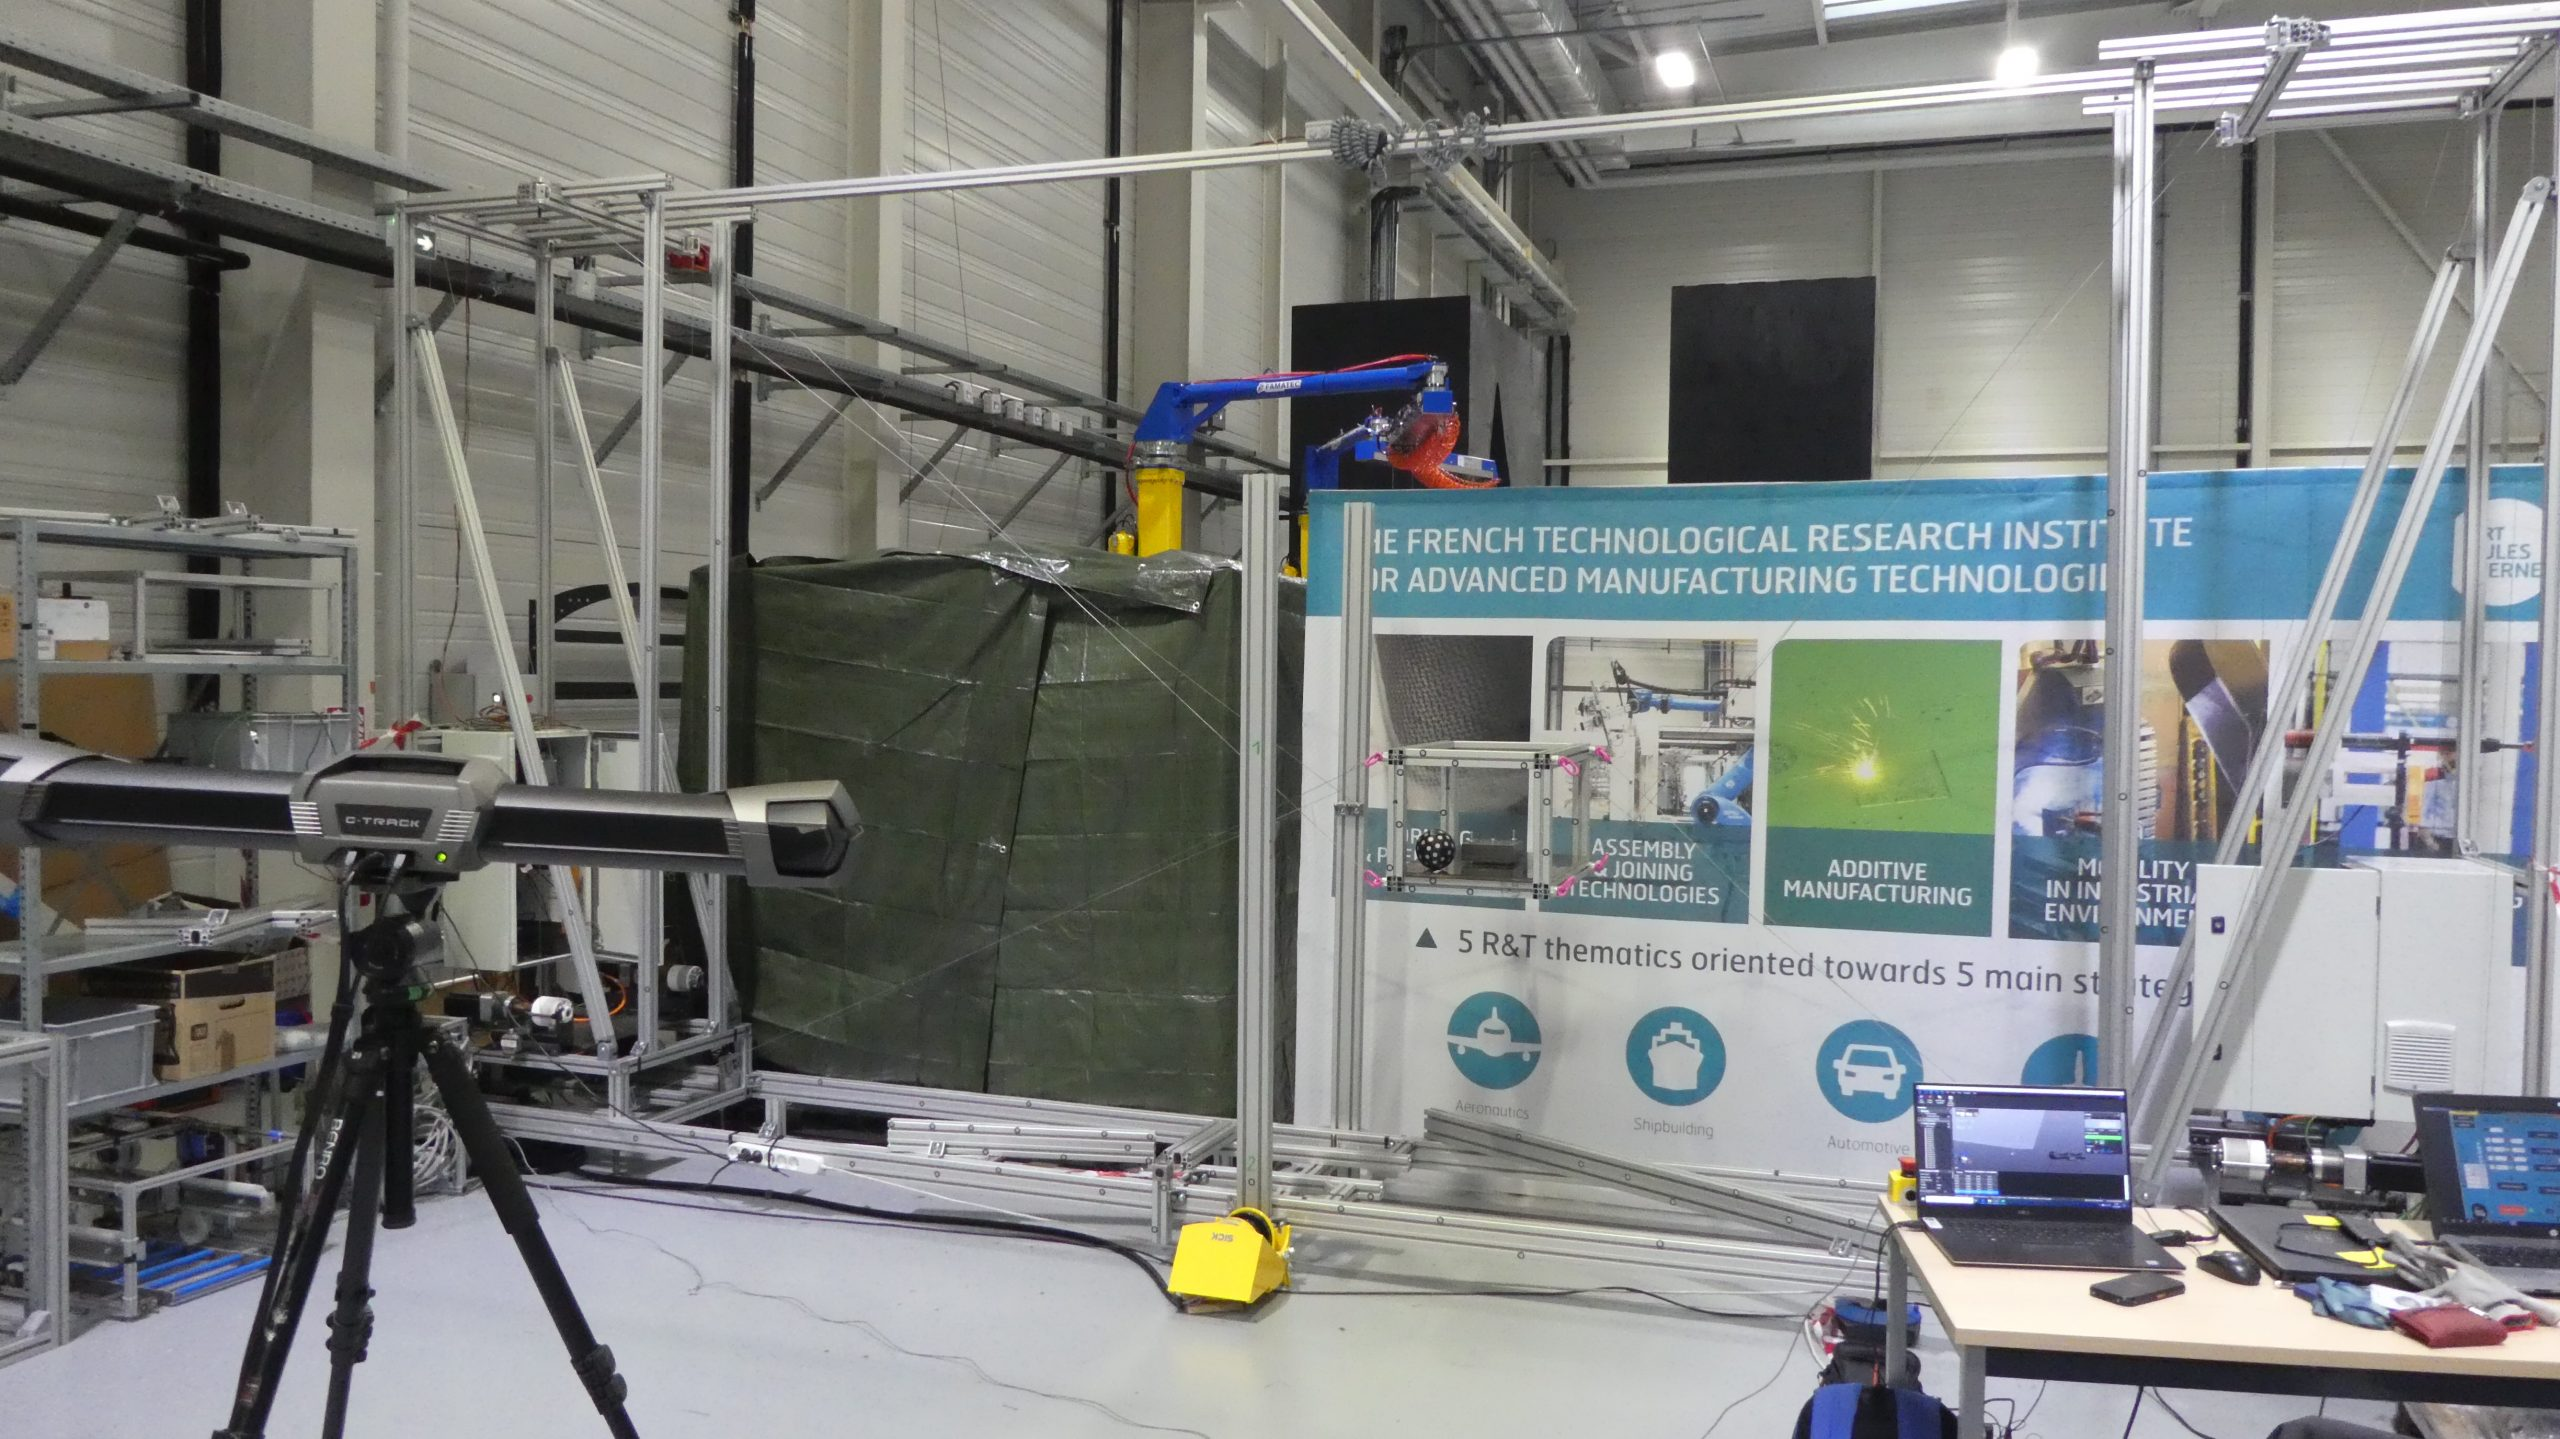 Research environment where a C-track evaluates a robot developed by IRT Jules-Verne